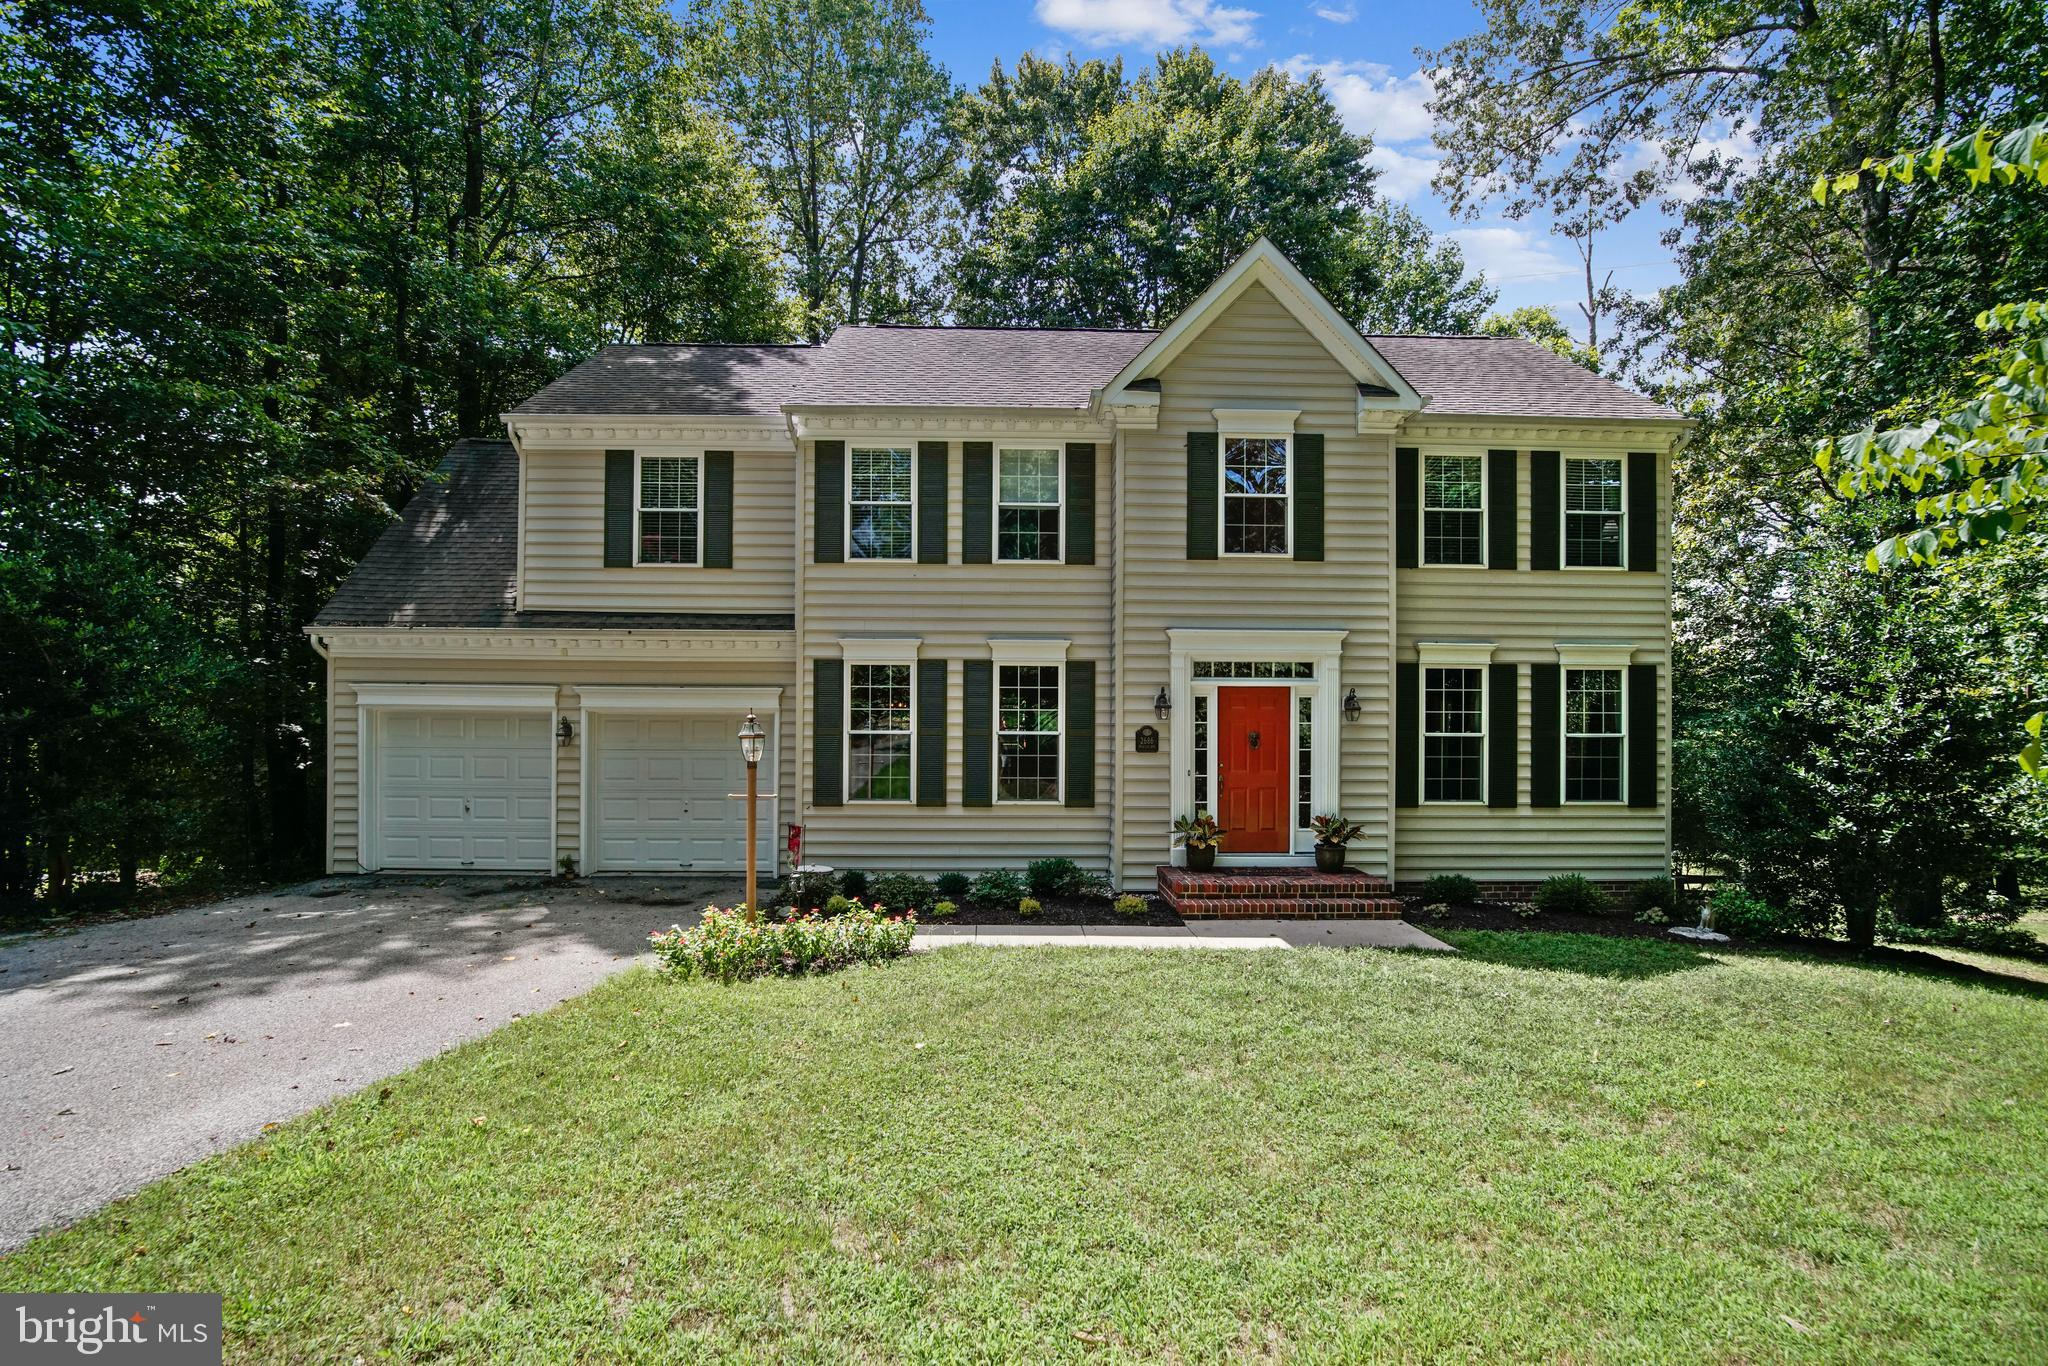 3 Finished Level Colonial w/ 4 Bedrooms/3.5 Bathrooms/2 Car Garage on over 2 Private Acre Lot-Many U